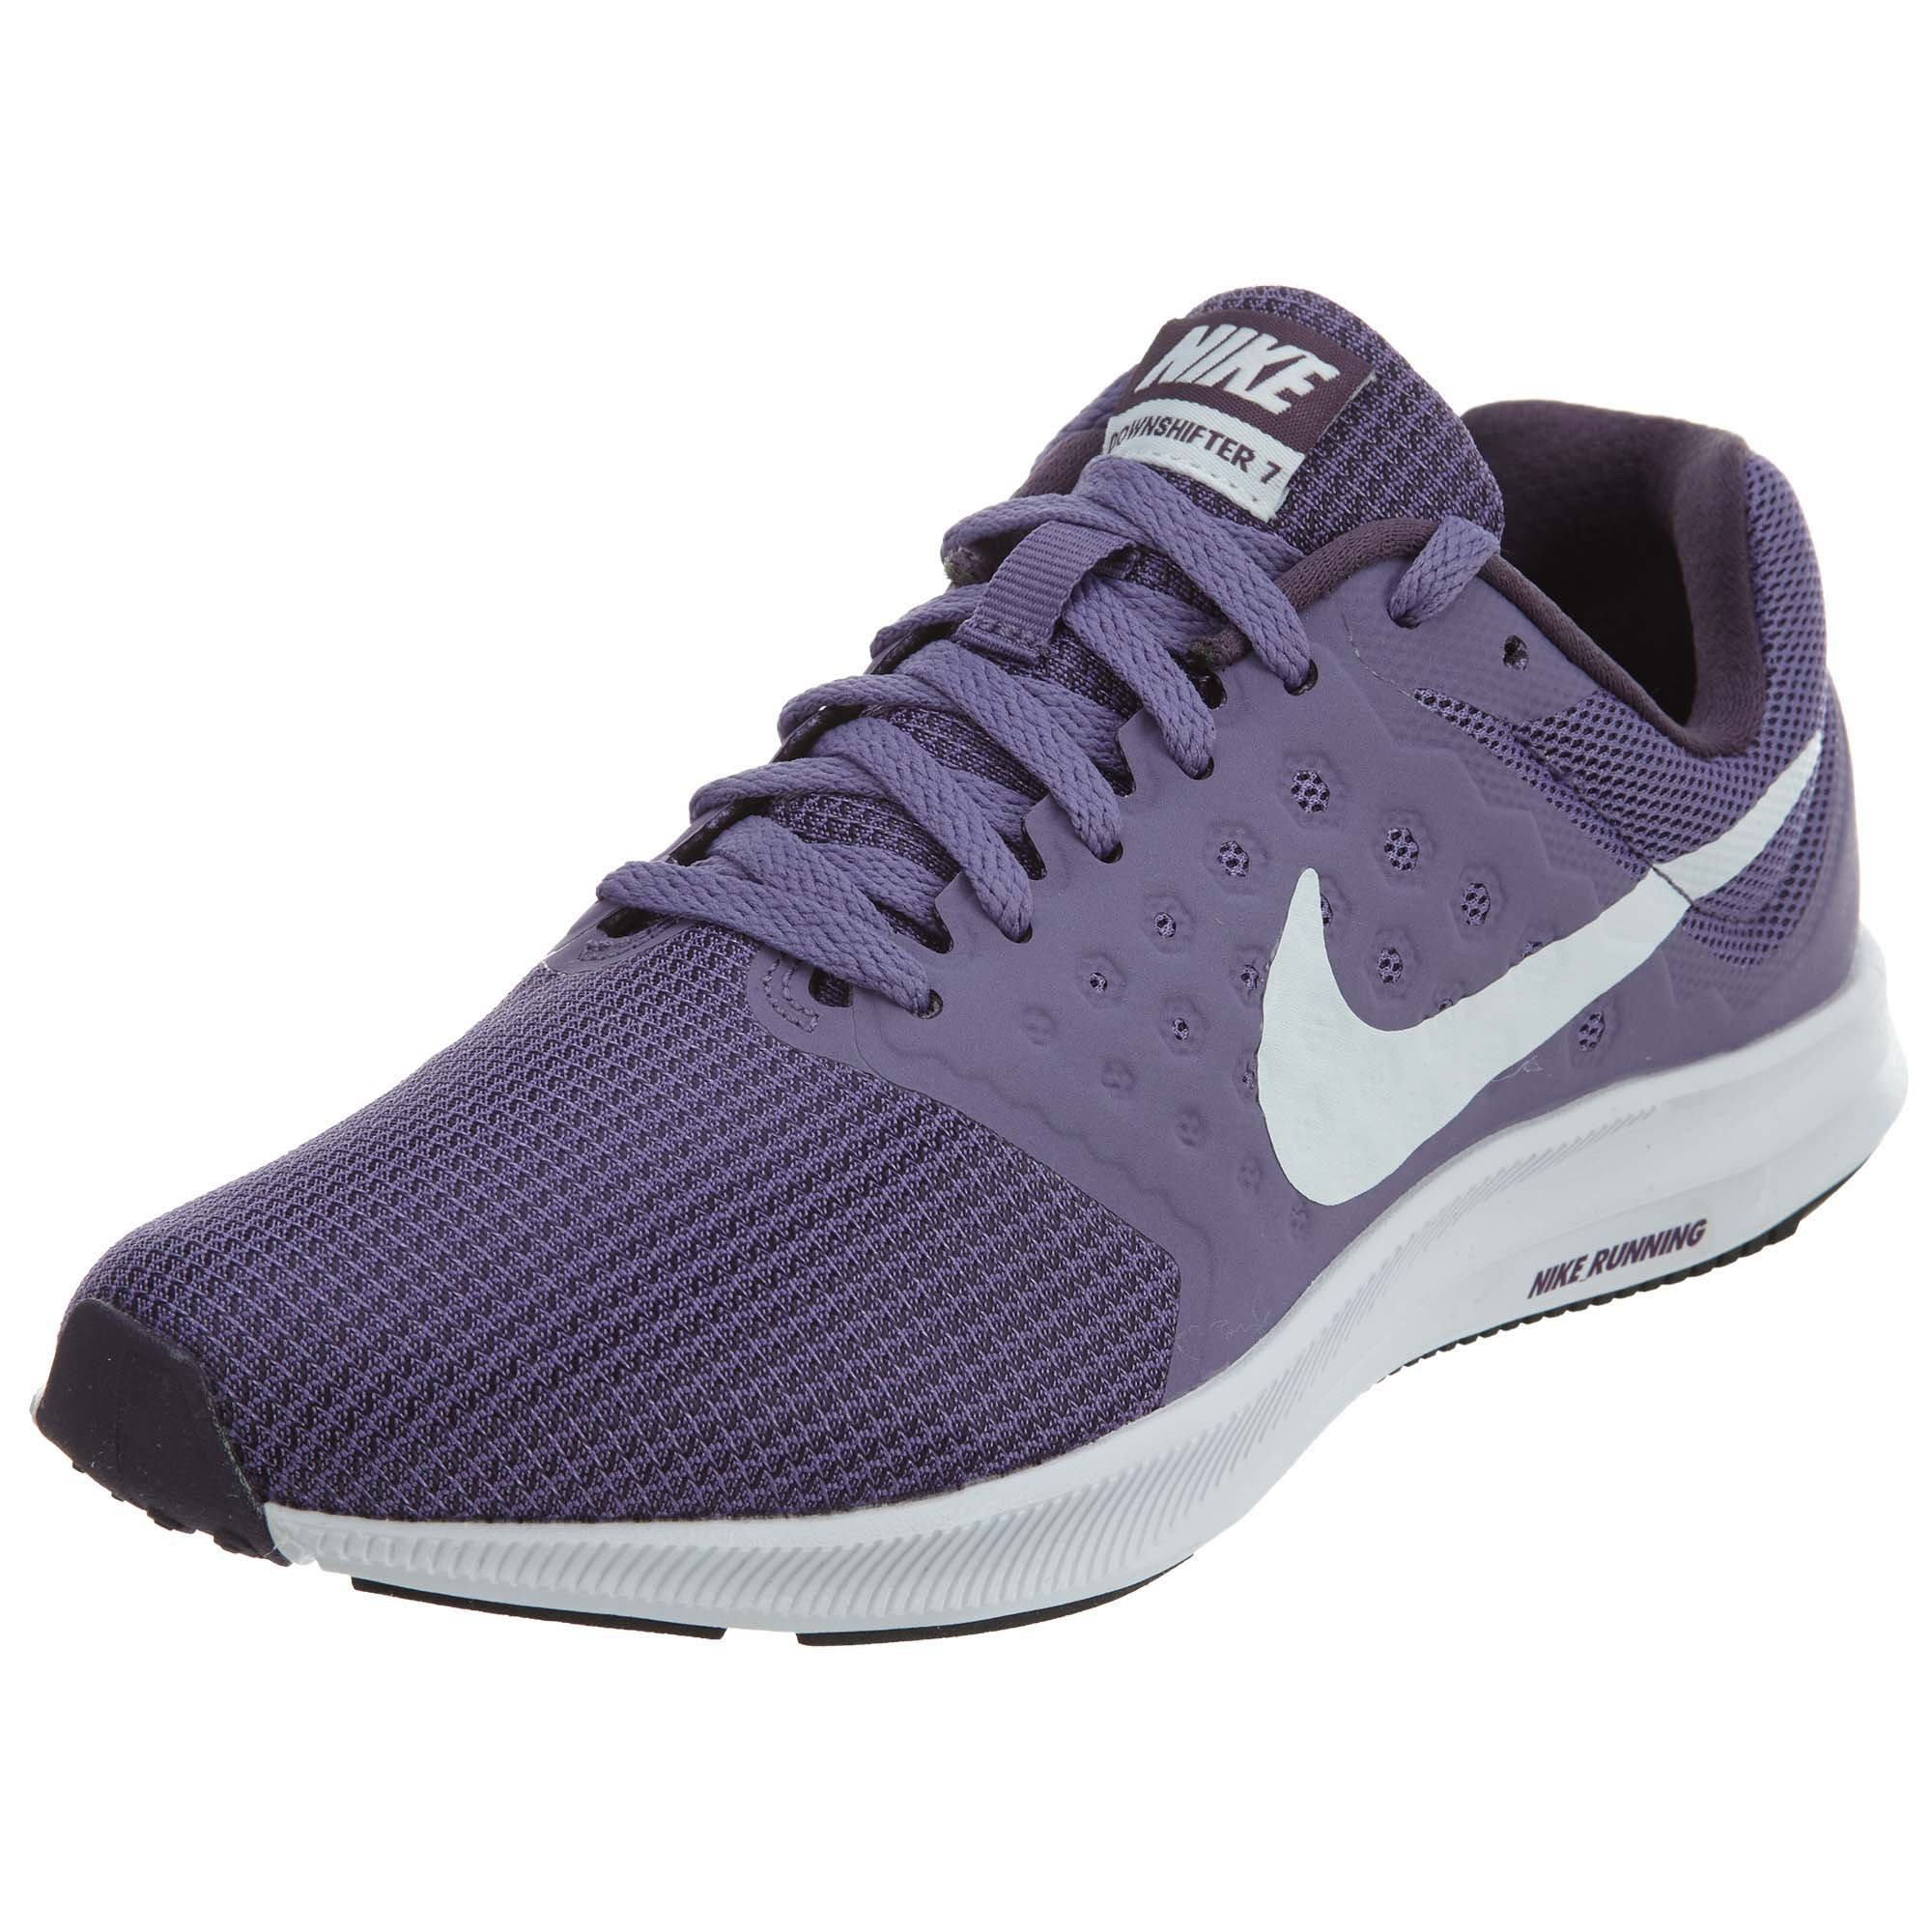 352026f92afbe Galleon - Nike Women s Downshifter 7 Running Shoe Purple Earth White Dark  Raisin Black Size 9 M US